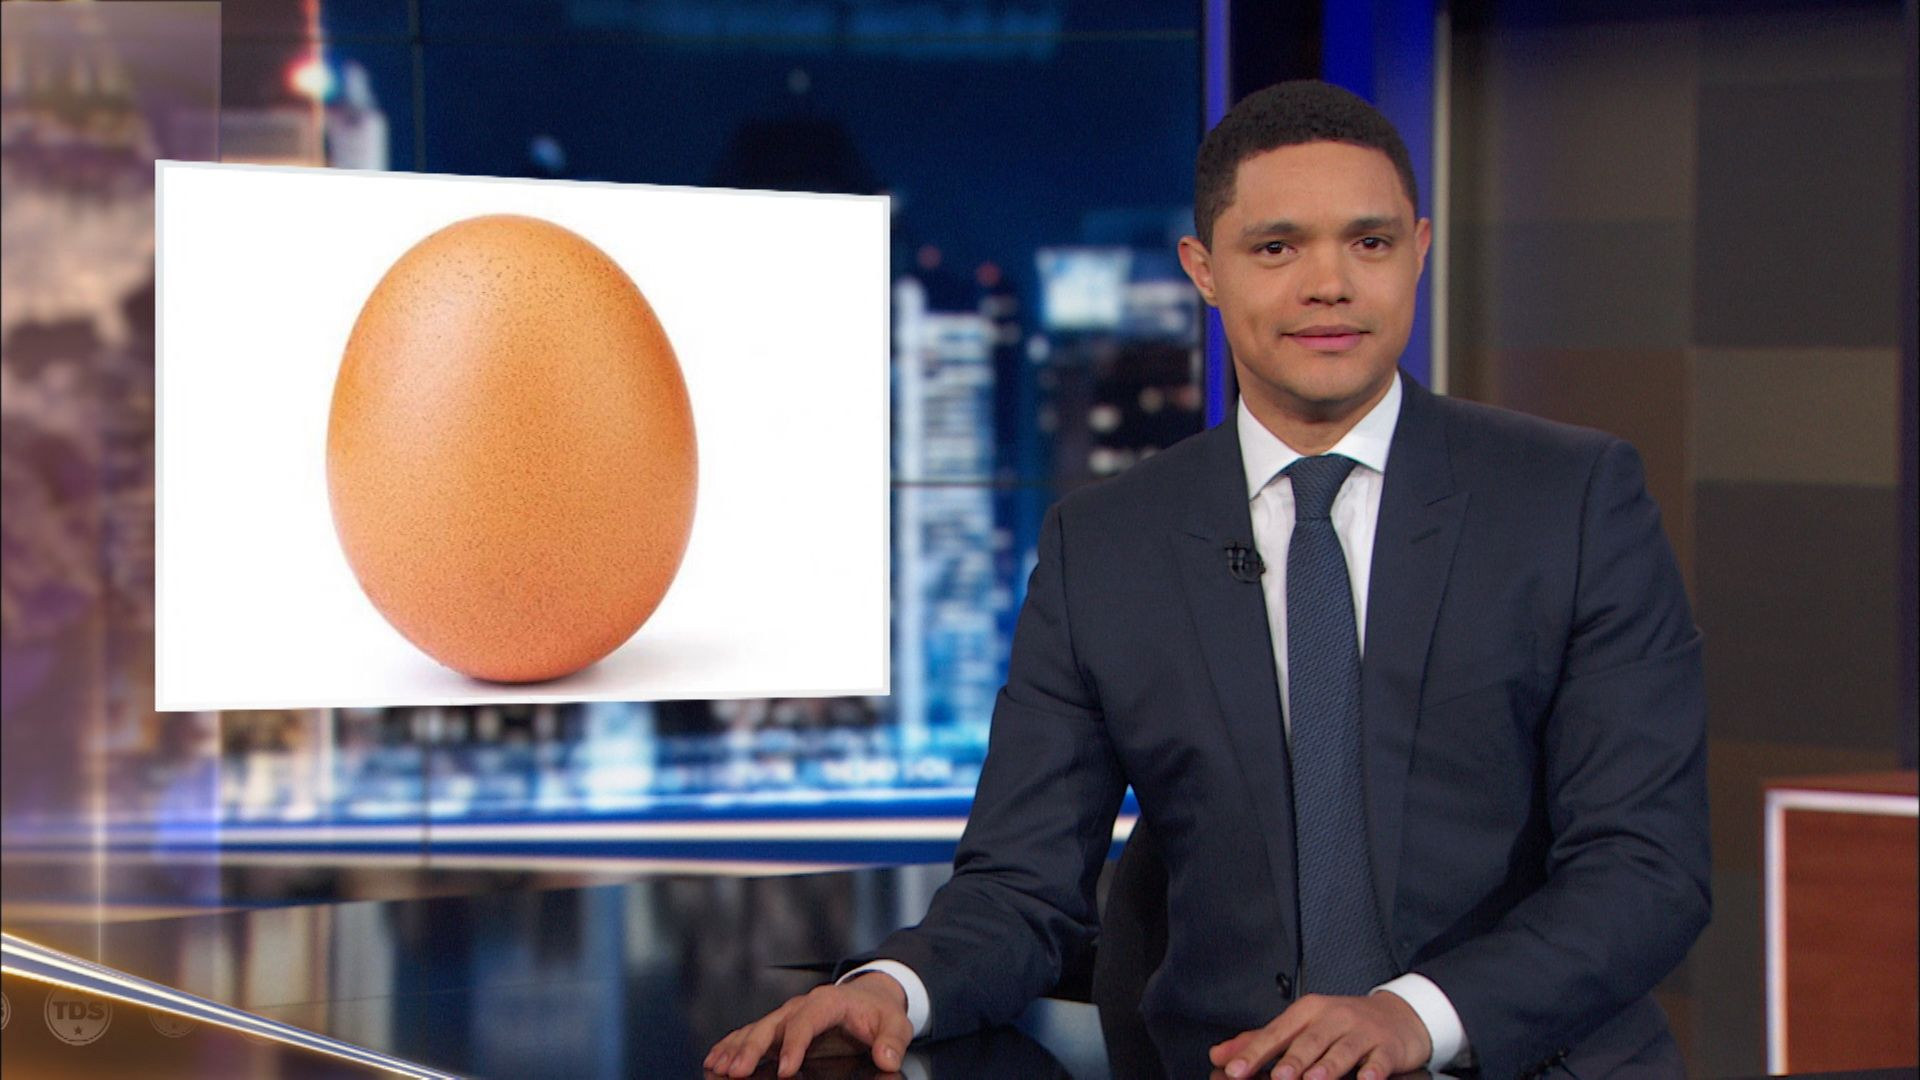 L.A. Teachers' Strike, the Egg that Broke Instagram & China's Historic Moon Landing - The Daily Show with Trevor Noah (Video Clip)